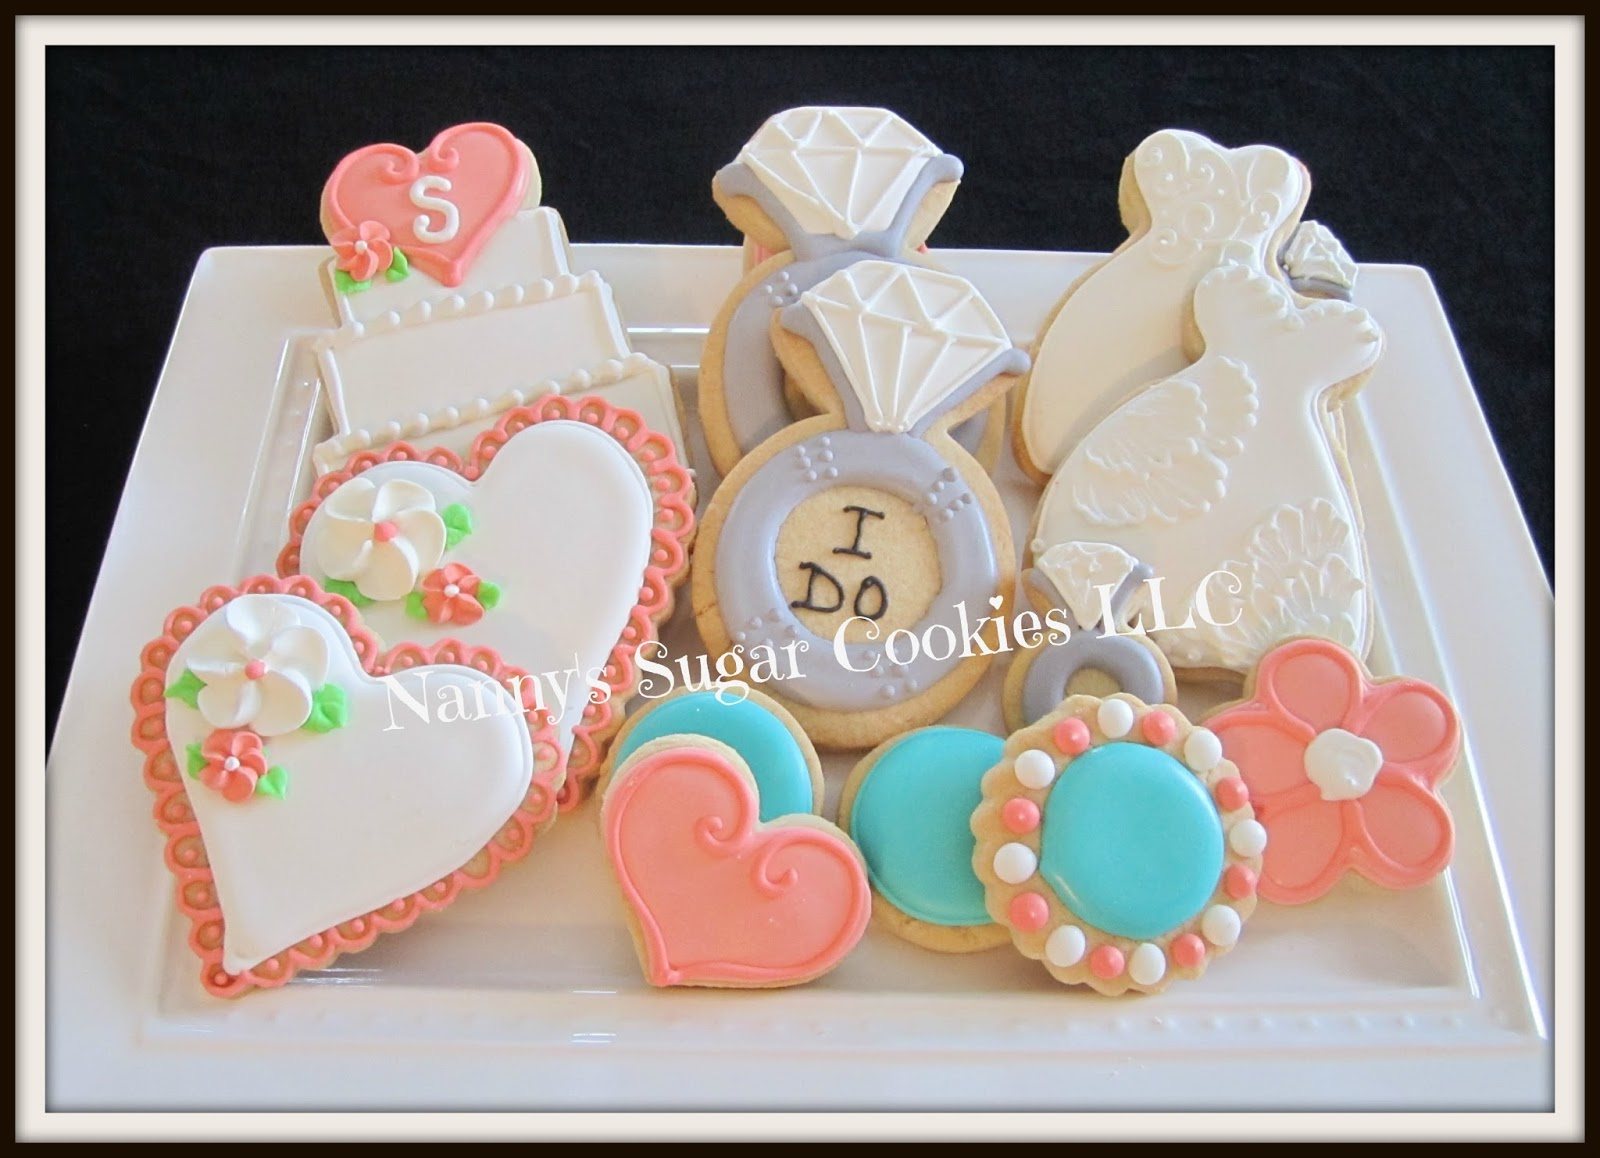 Nanny\'s Sugar Cookies LLC: Bridal Shower Cookie Platter....